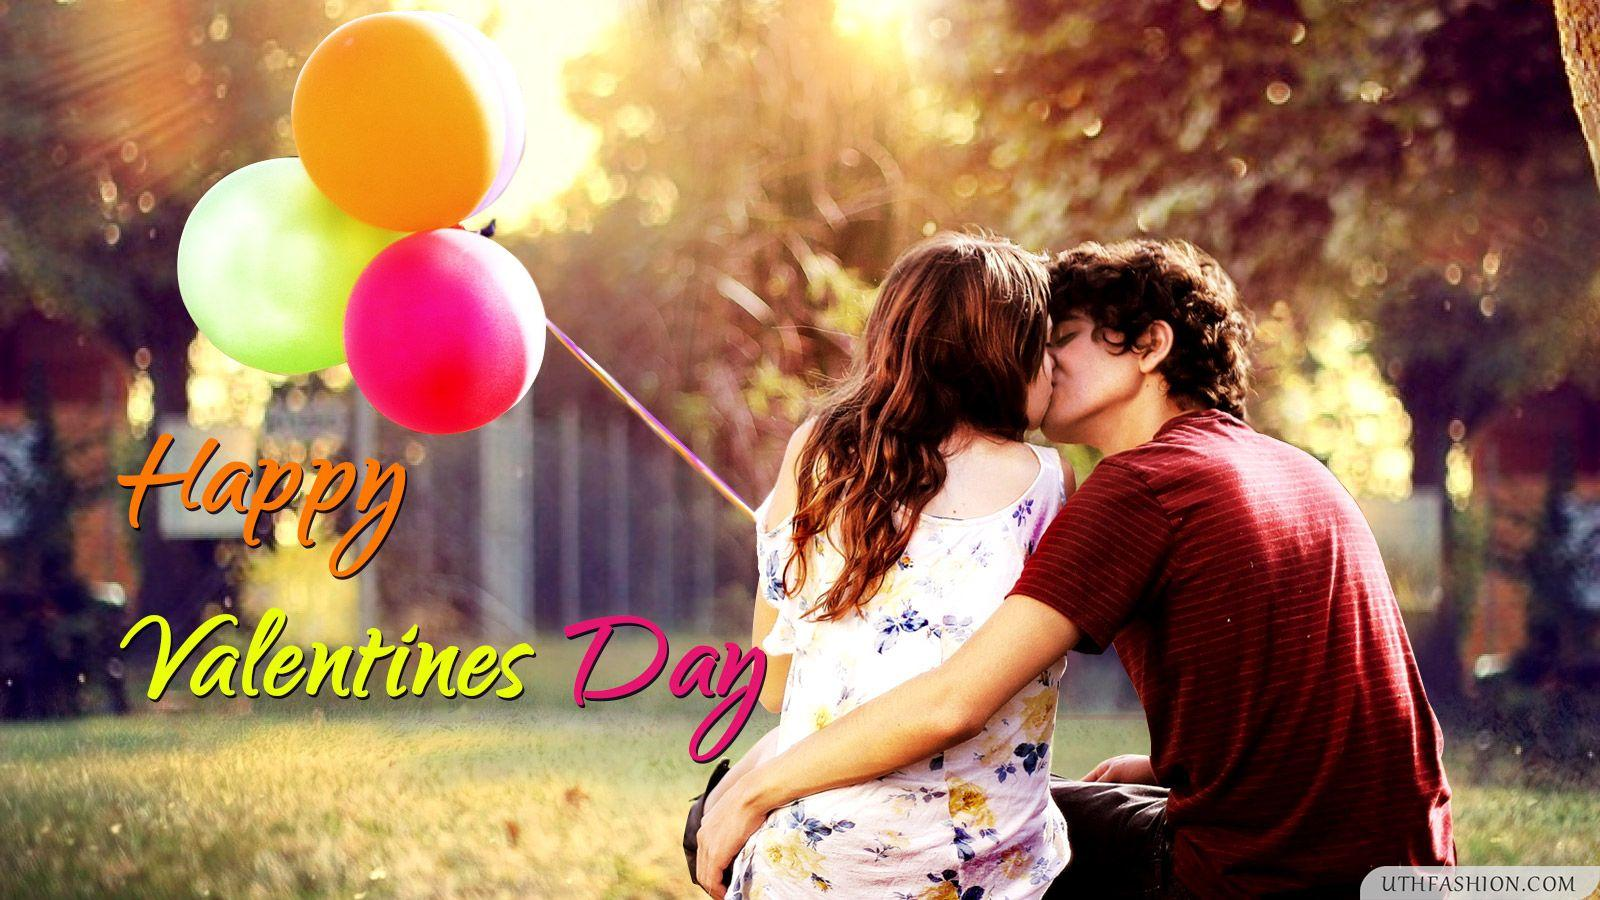 Valentines Day Images, HD Wallpapers, Photos, Pictures, Pics ...